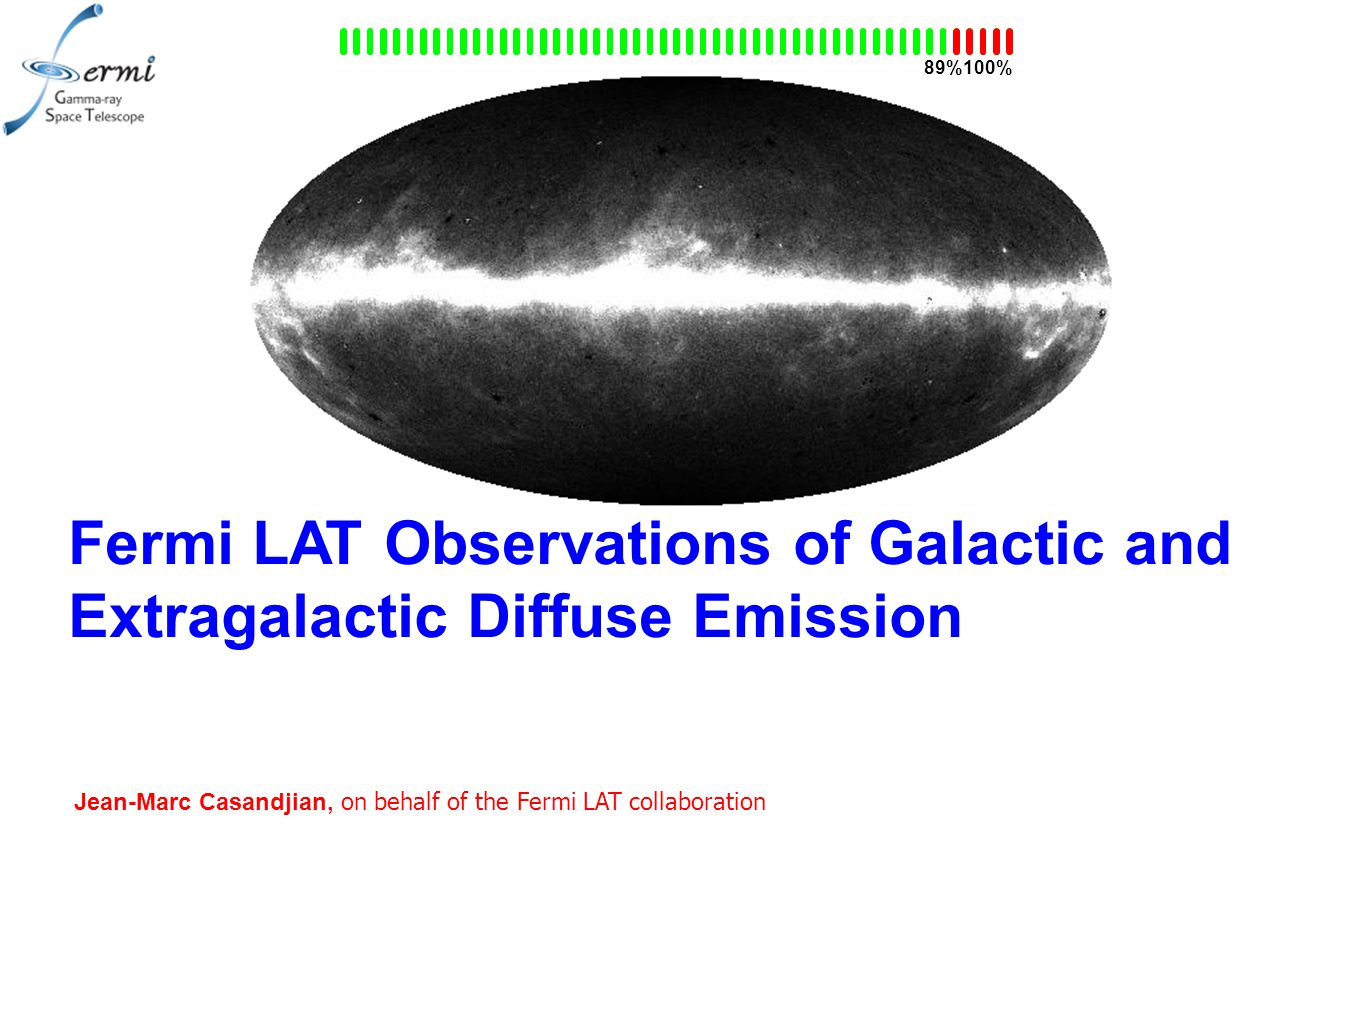 100%89% Fermi LAT Observations of Galactic and Extragalactic Diffuse Emission Jean-Marc Casandjian, on behalf of the Fermi LAT collaboration